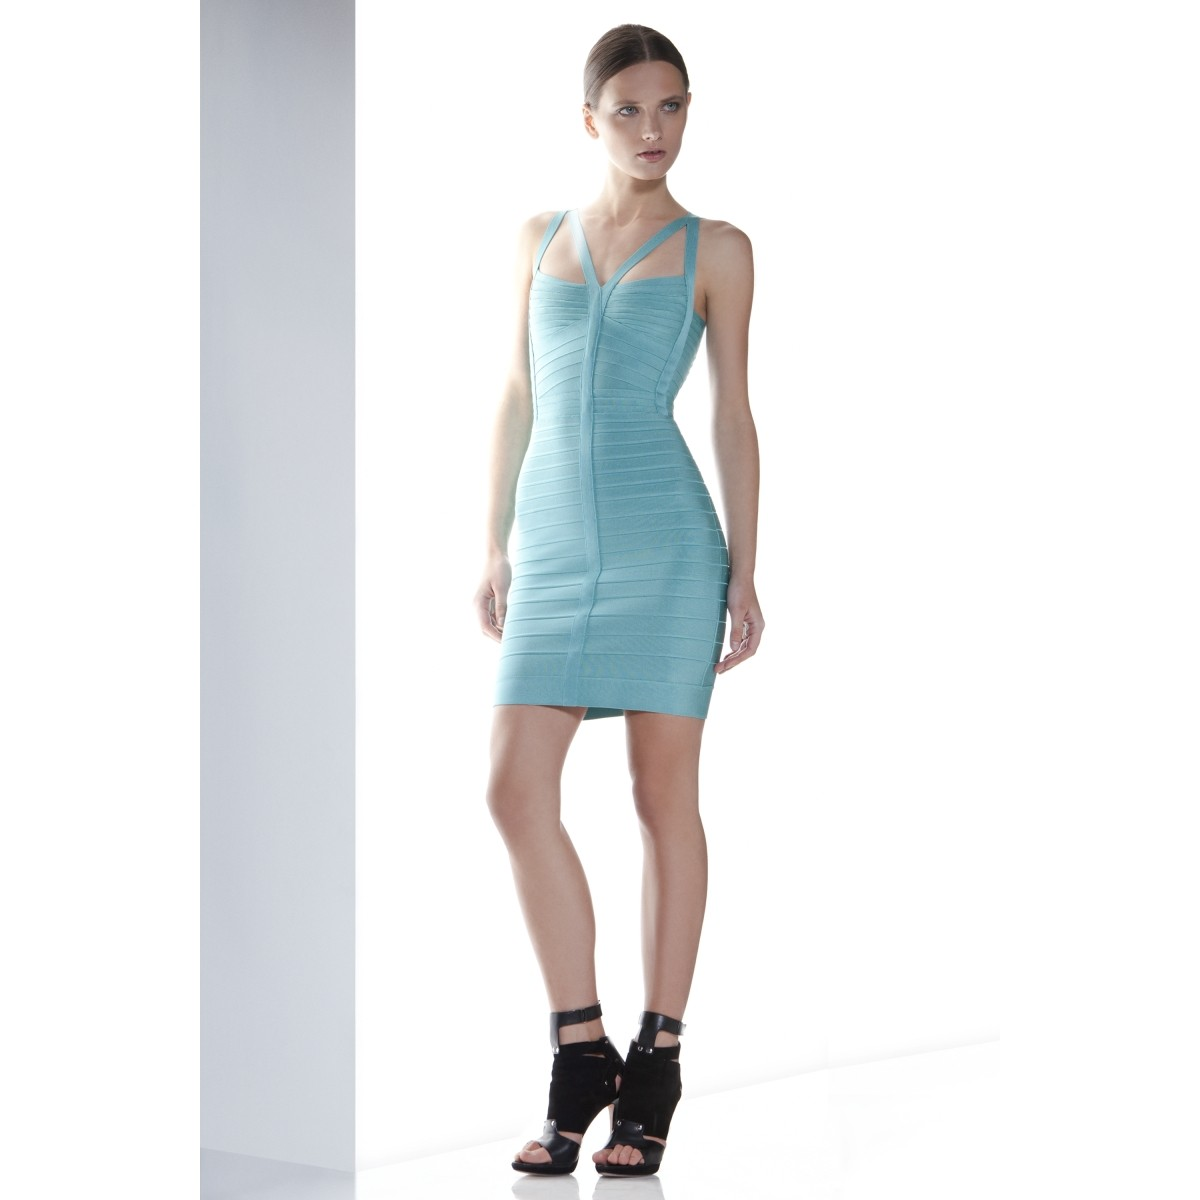 Herve Leger Julianna Dress